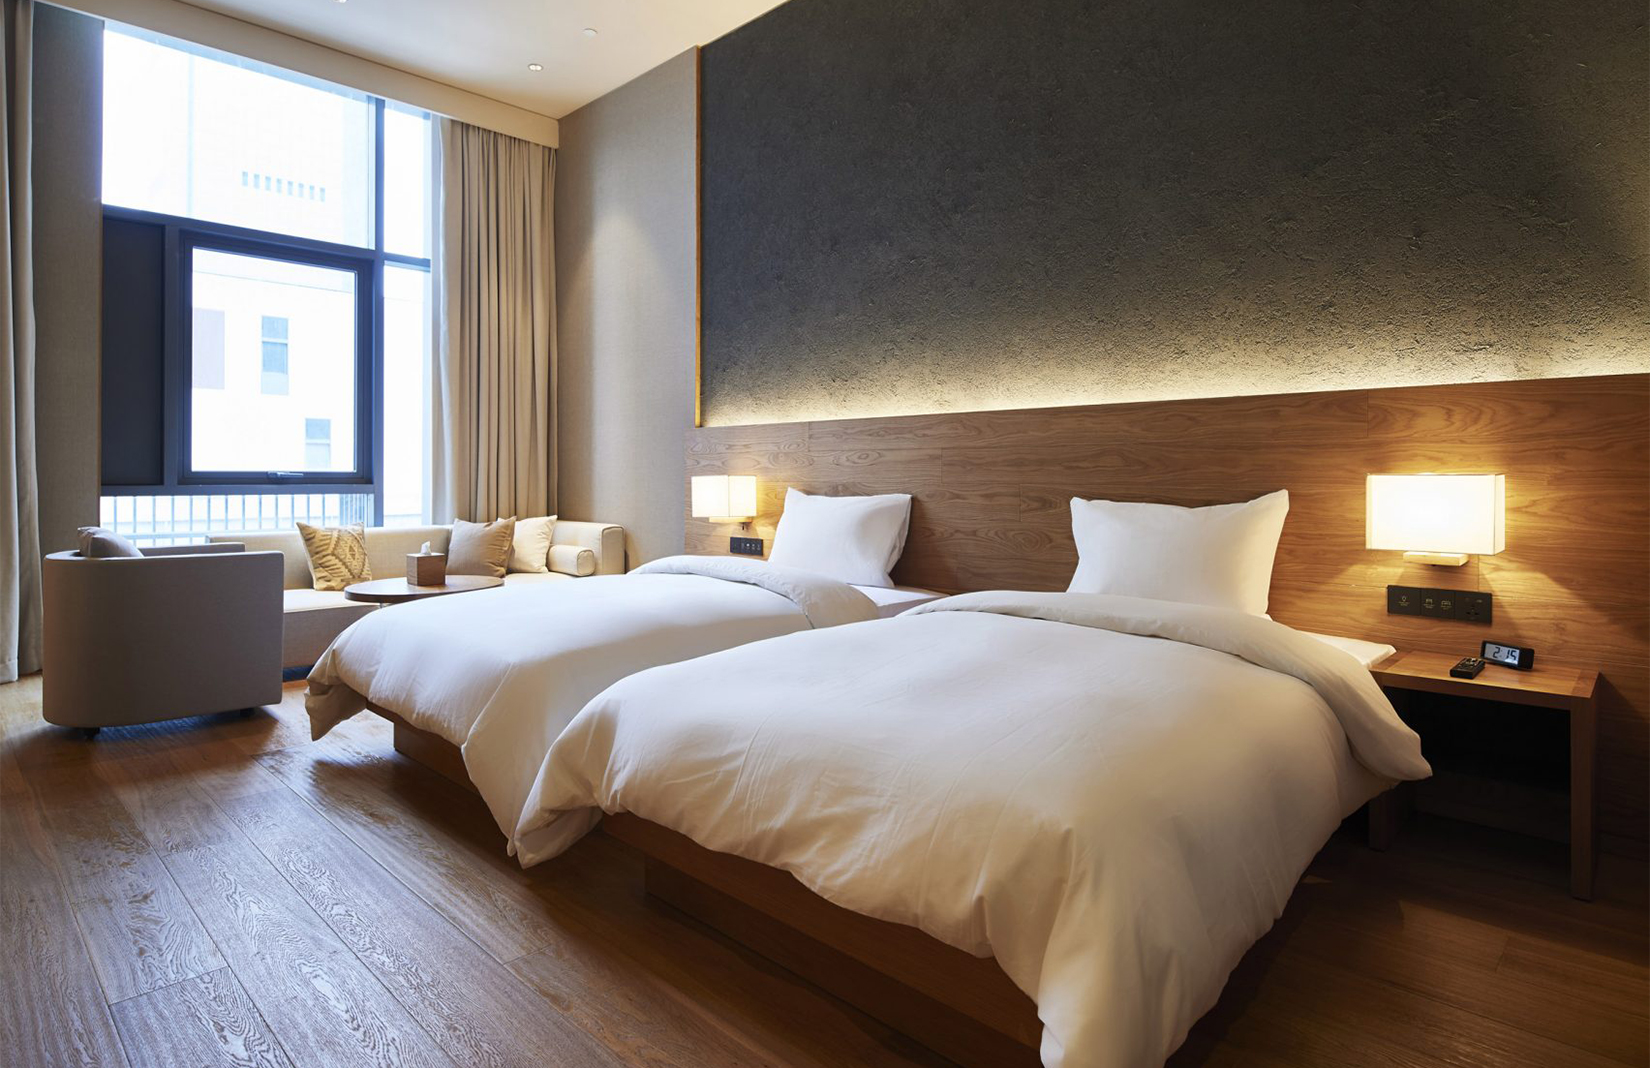 Muji hotel in shenzhen has anti gorgeous interiors for Interior design bedroom ideas 2018